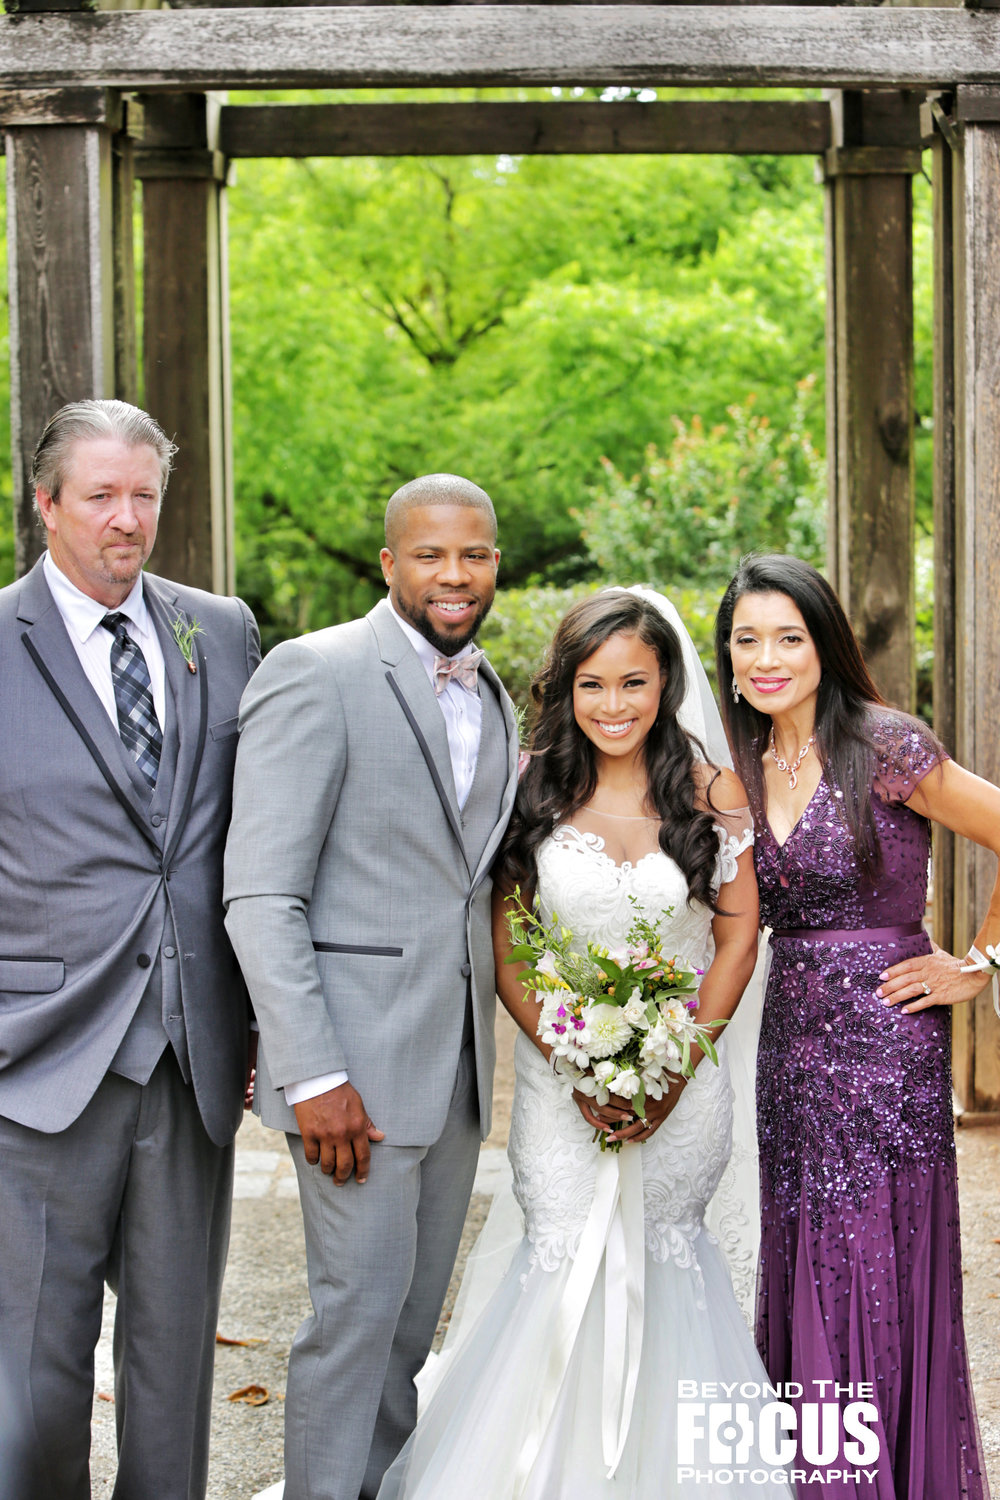 Christan_Imani_WeddingPartyFamily_W_12.jpg